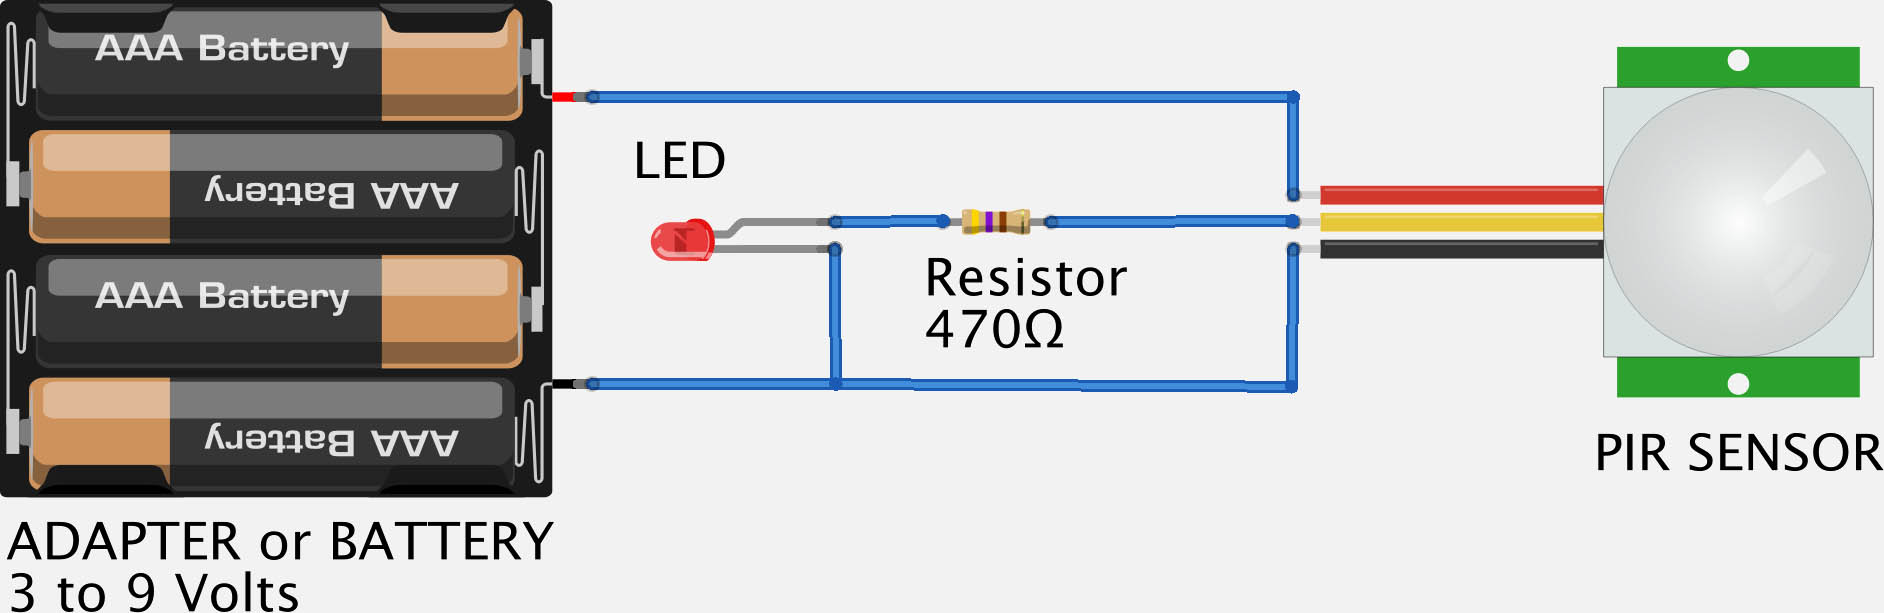 Pir Light With No Override moreover  in addition Schemview together with Microcontroller Project Thief Detector Using Pir Motion Sensor And Pic Microcontroller further Heartbeat Monitor Project Using Arduino. on pir sensor circuit diagram